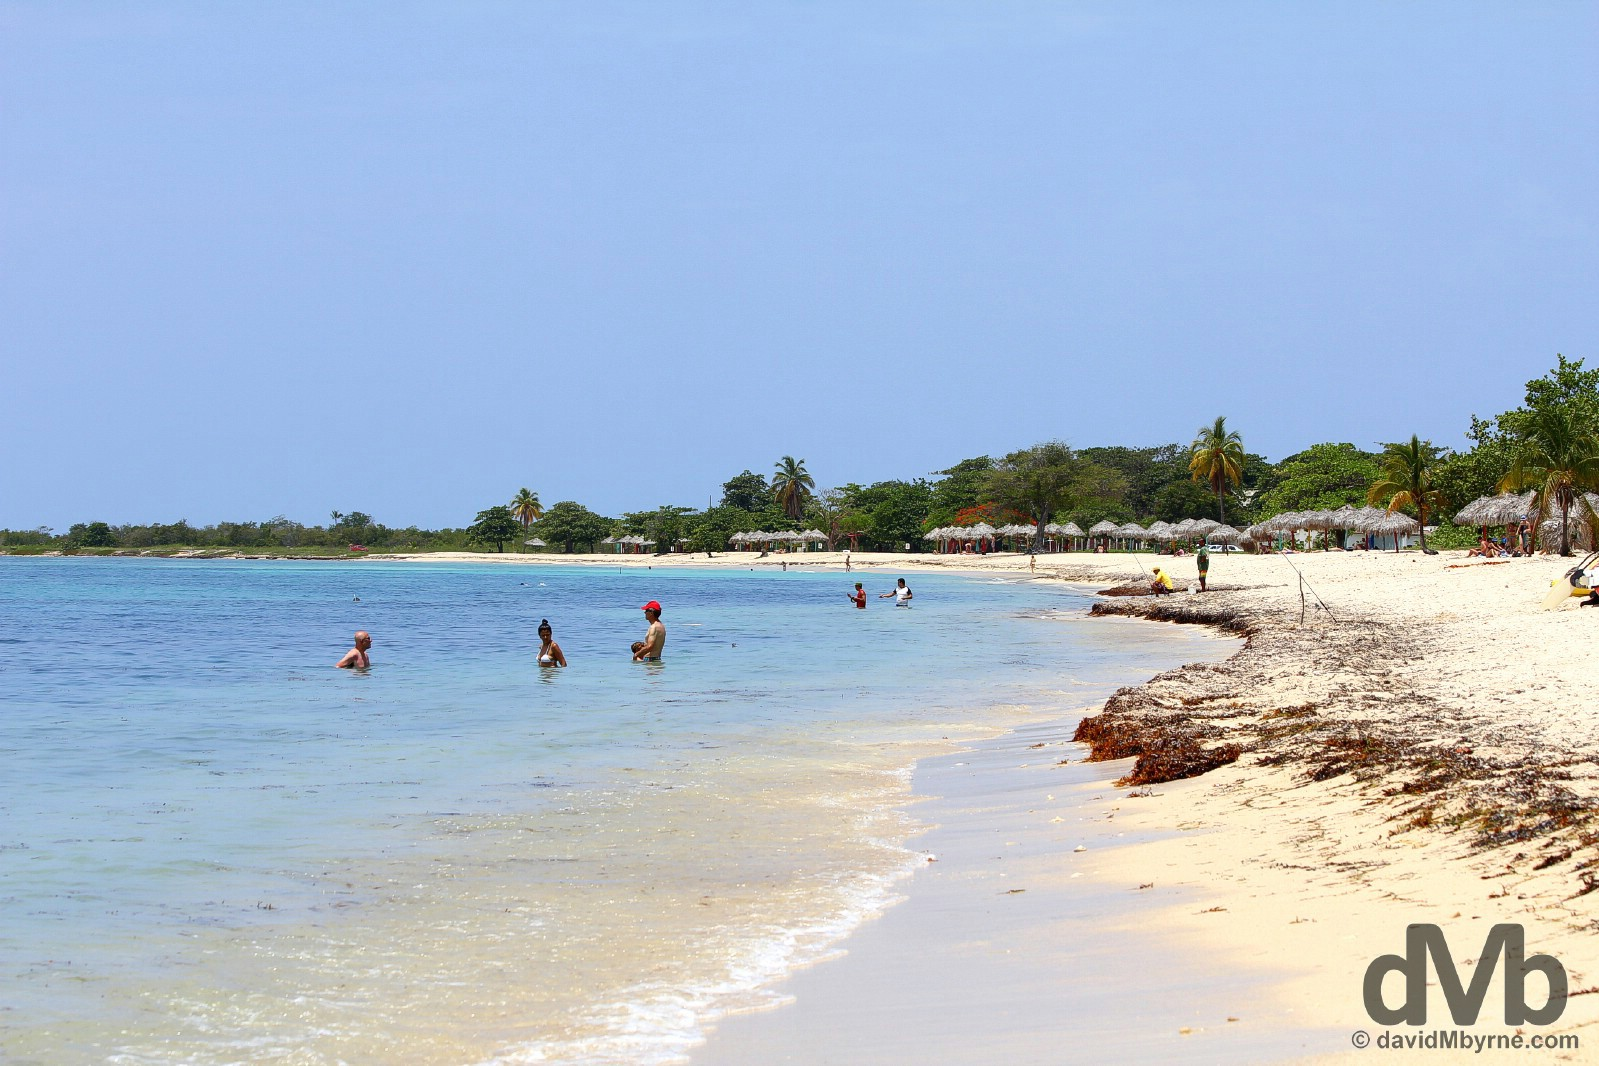 Playa Ancon, Cuba. May 6, 2015.